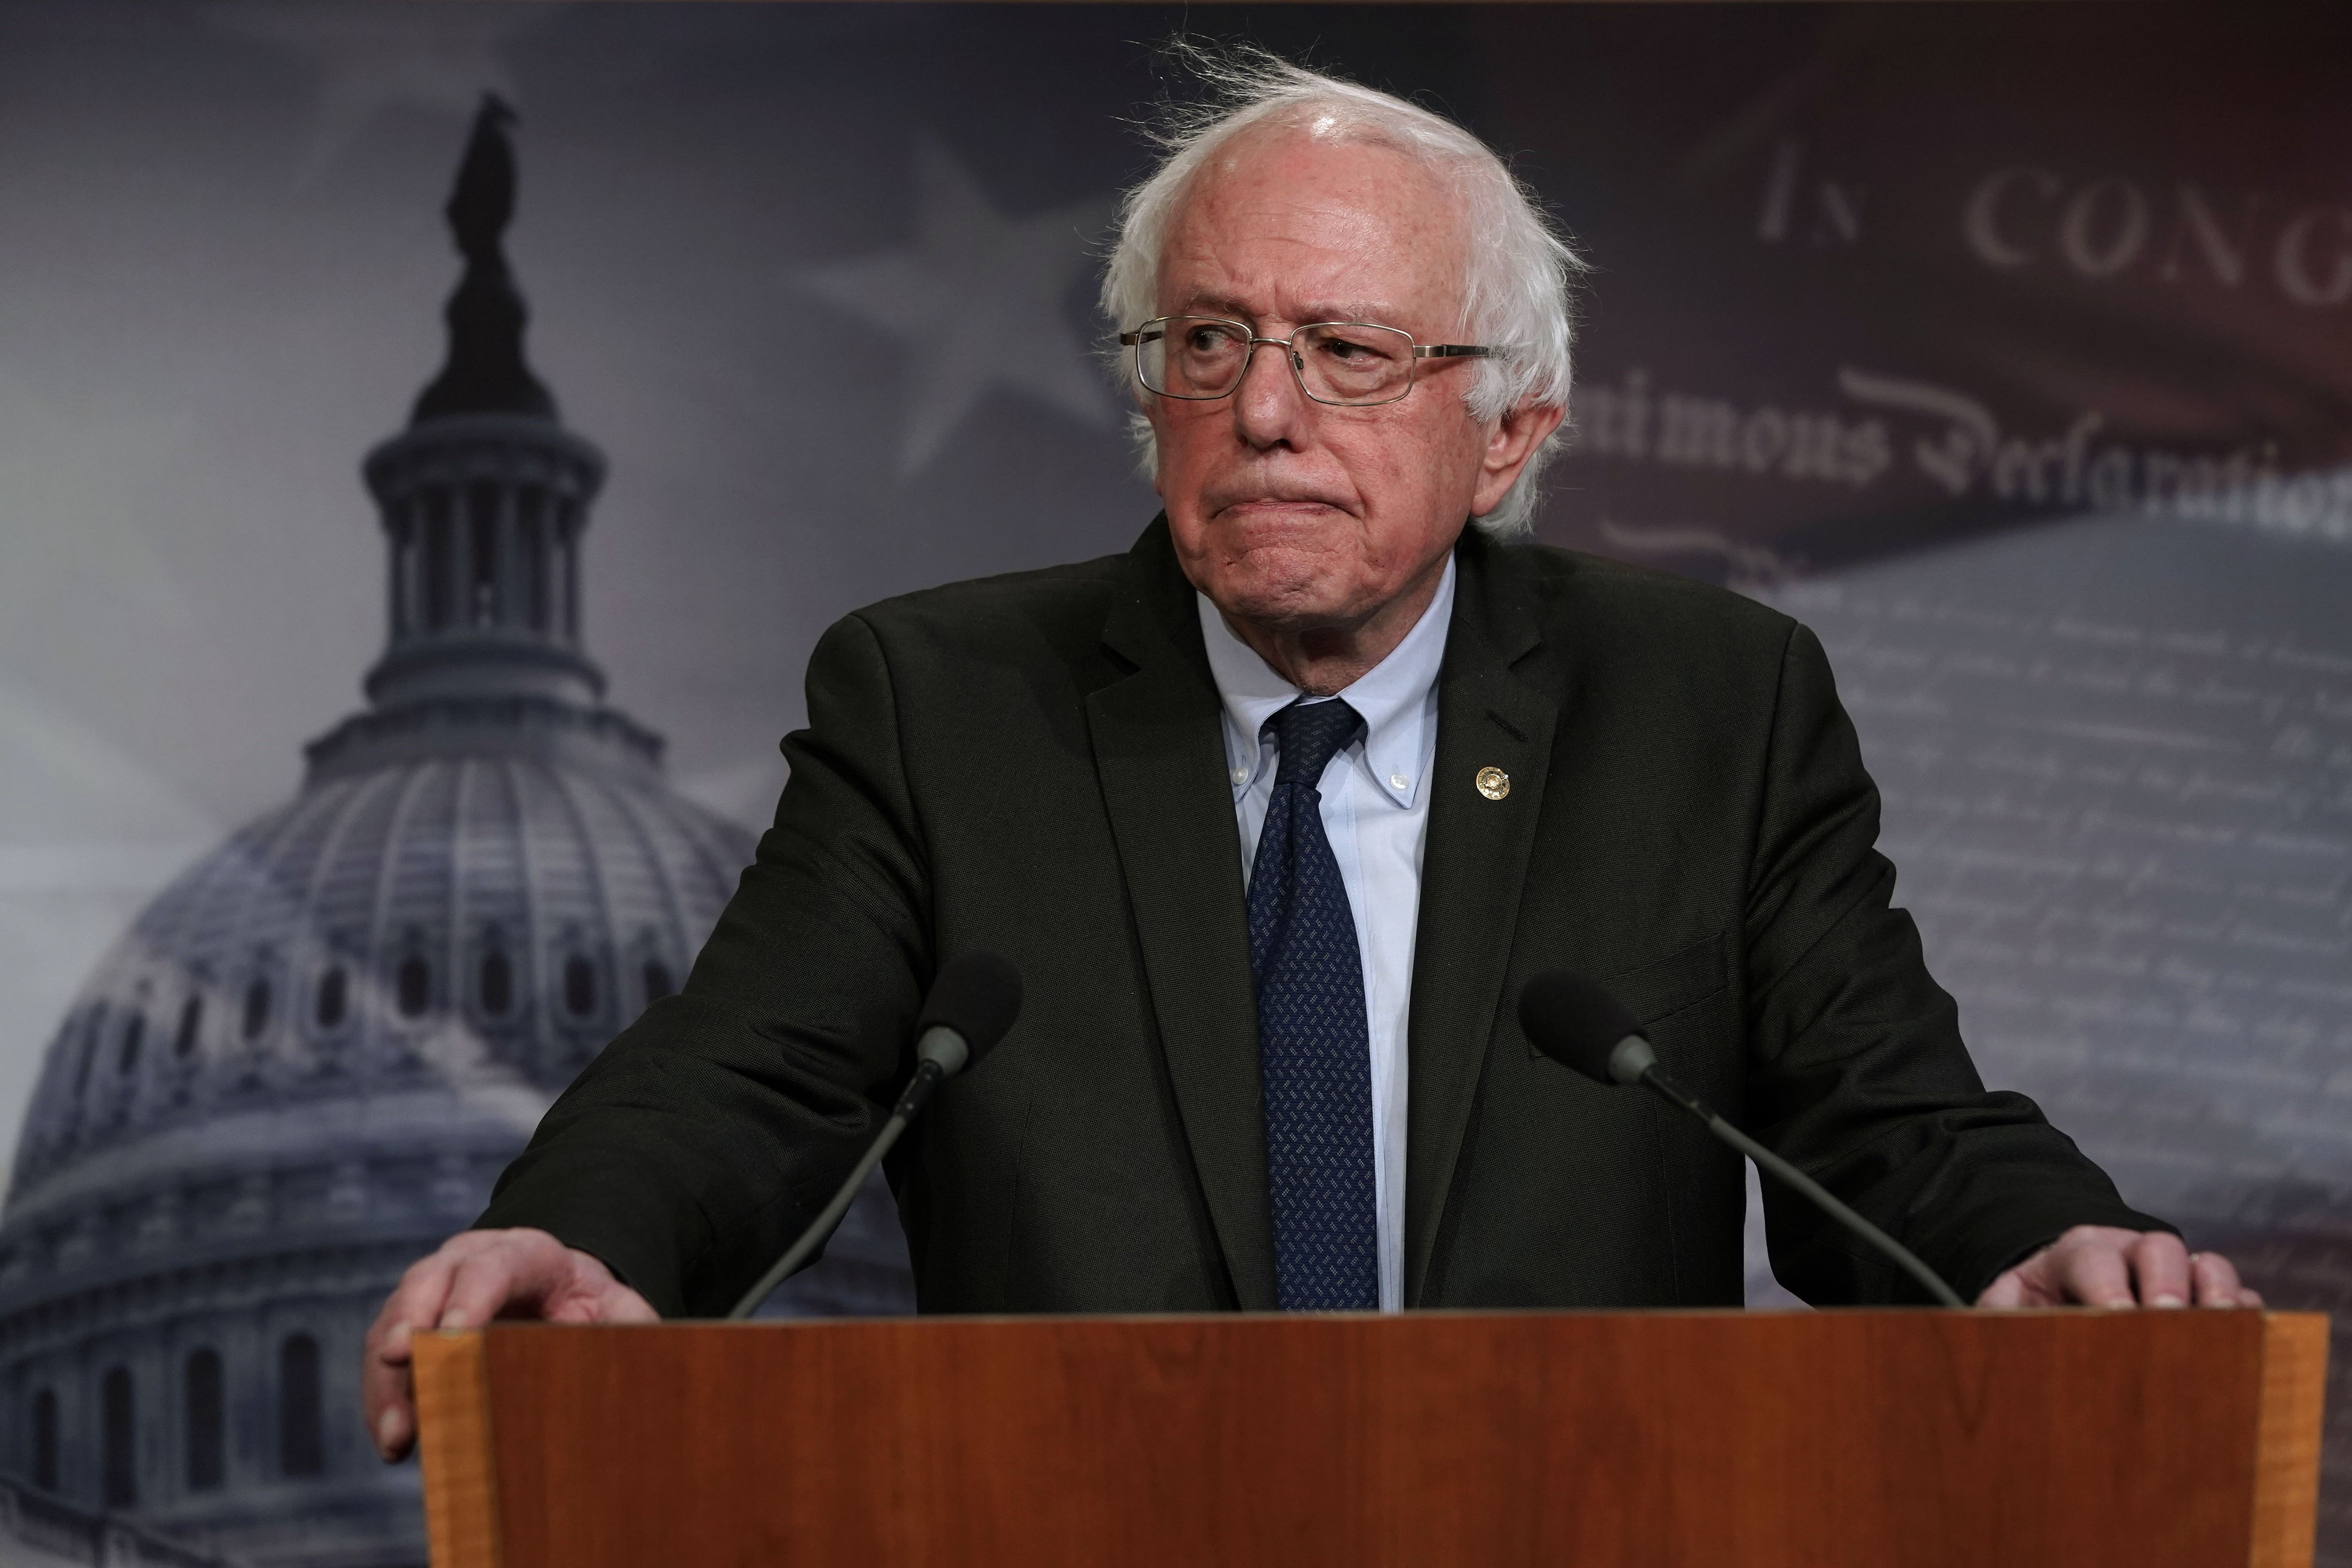 Bernie Sanders Has To Run - To Make Democrats More Critical Of Israel